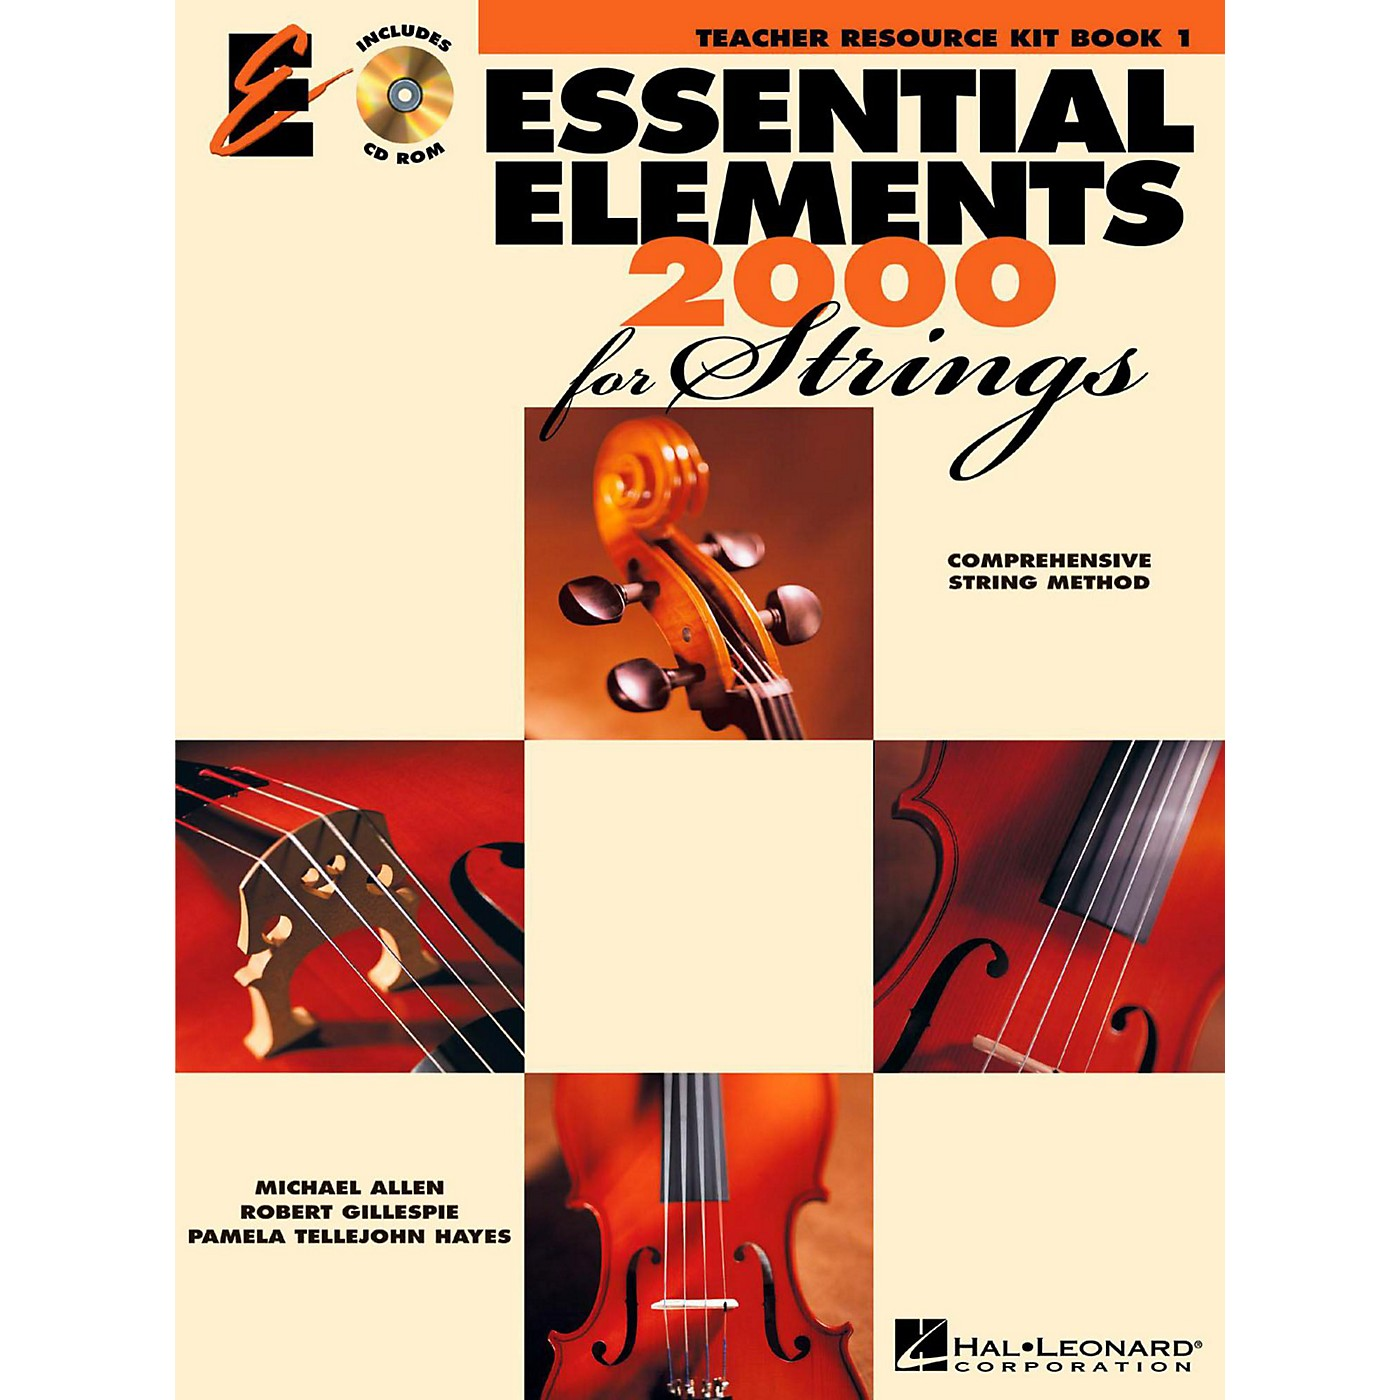 Hal Leonard Essential Elements 2000 for Strings - Teacher Resource Kit (Book 1 with CD-ROM) thumbnail